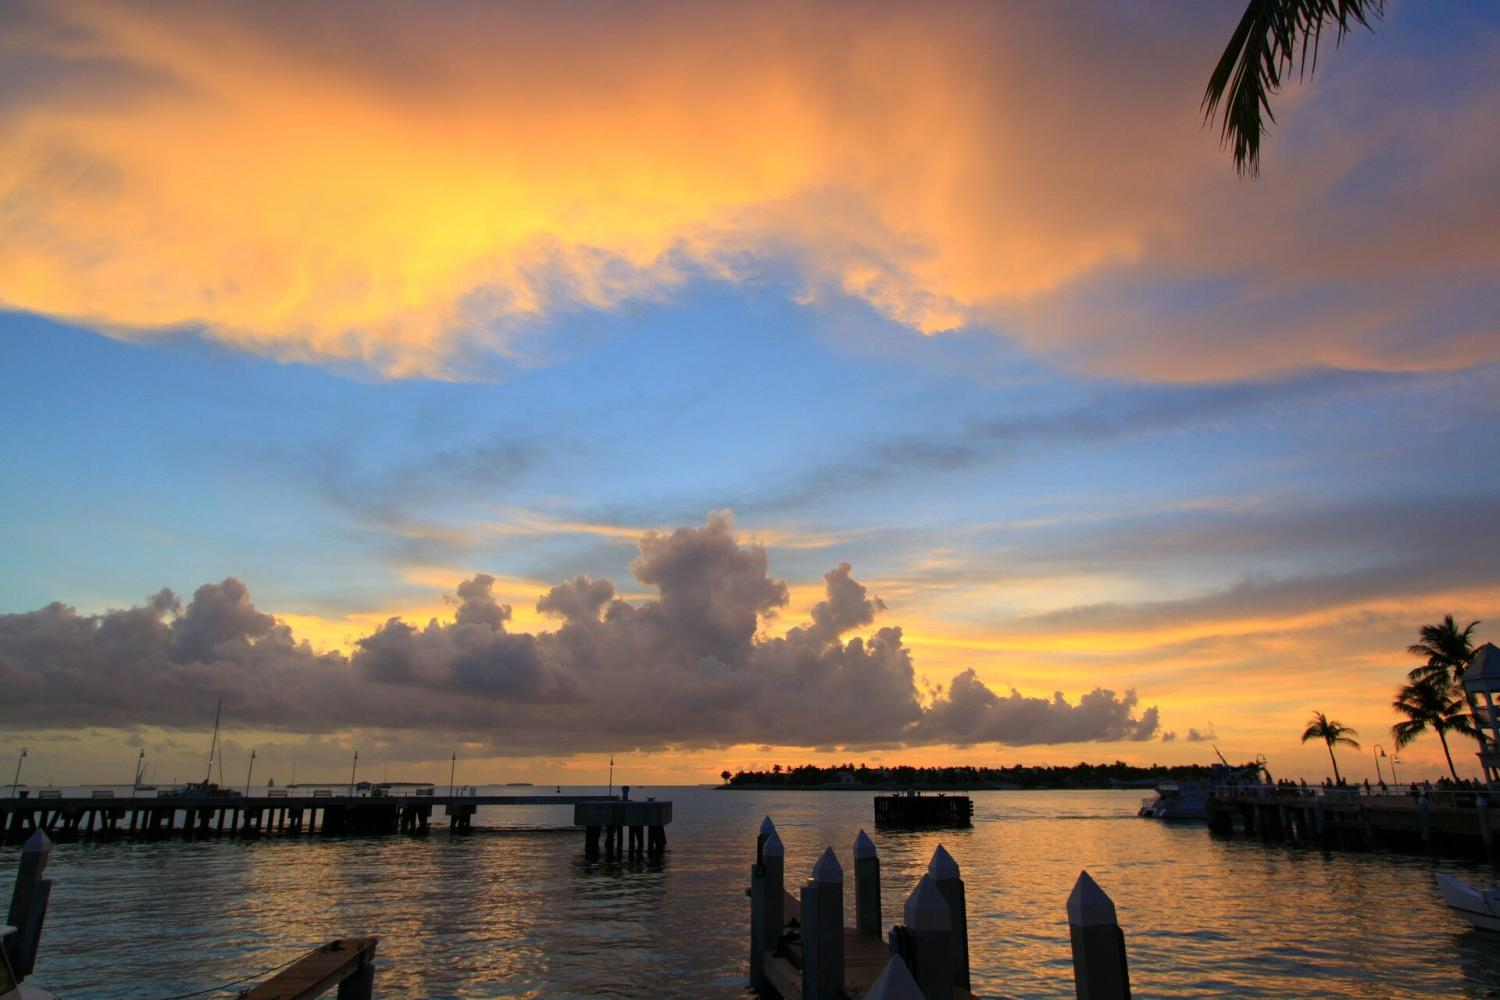 A lot can be seen on a day trip to Key West